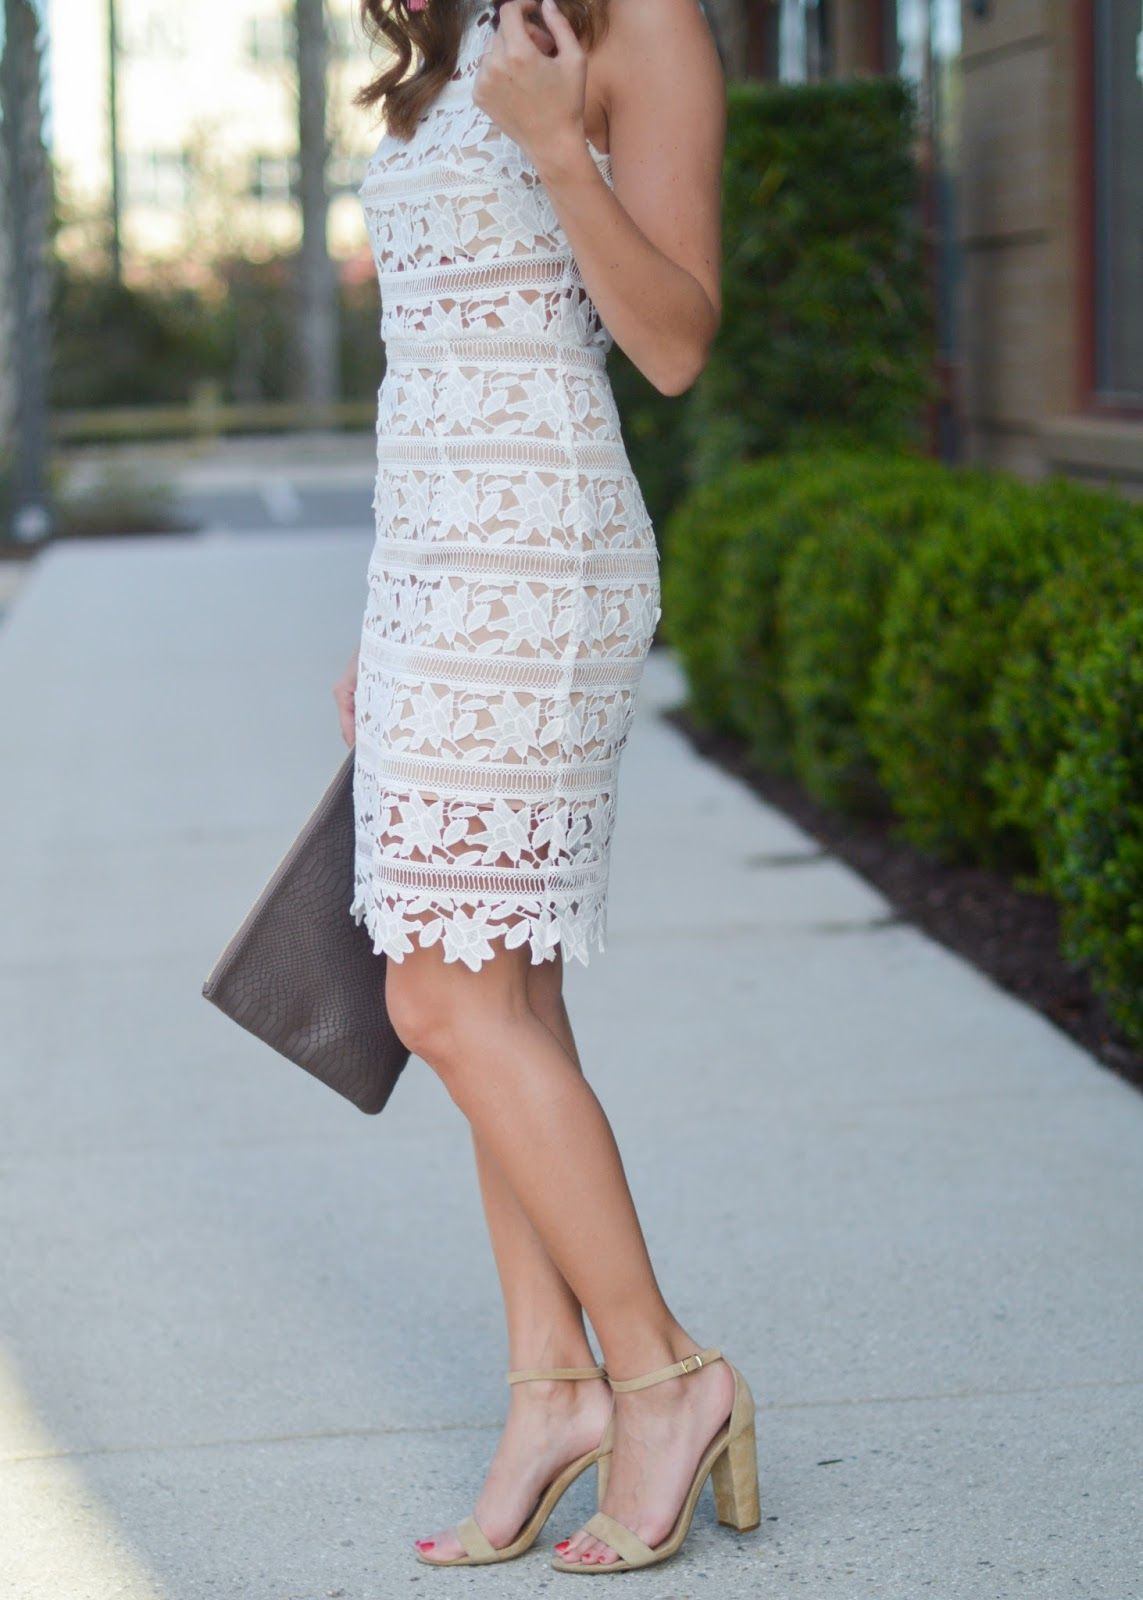 White Lace | Engagement party dresses, Shower dresses and White lace ...